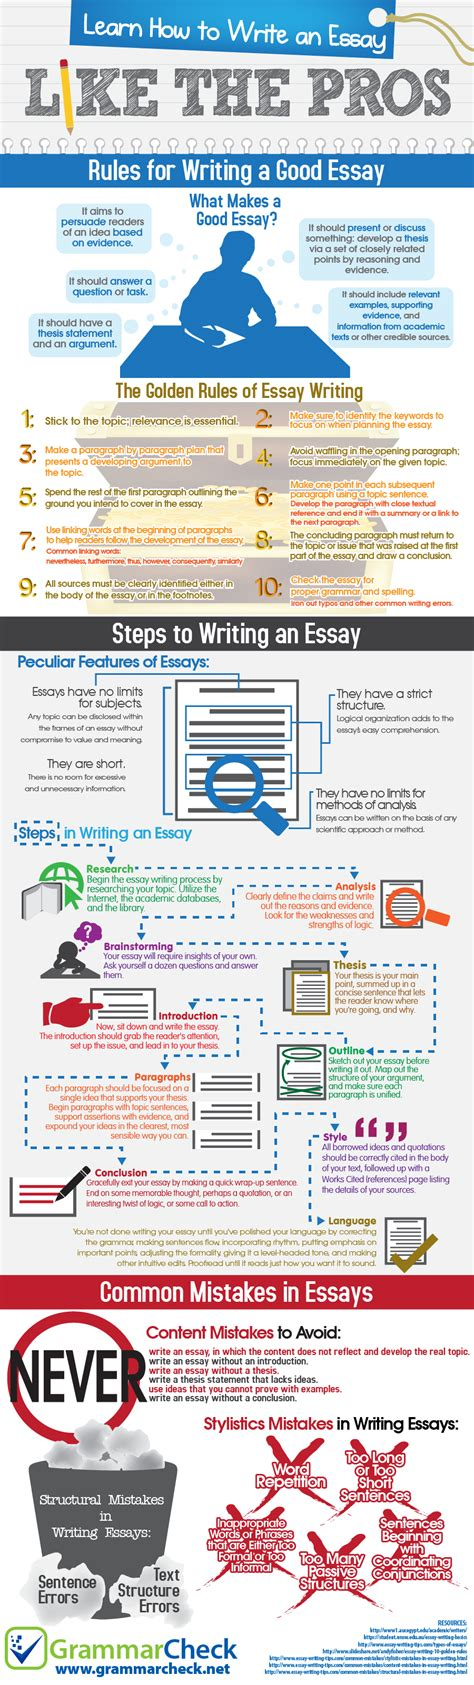 custom dissertation ghostwriter websites for university